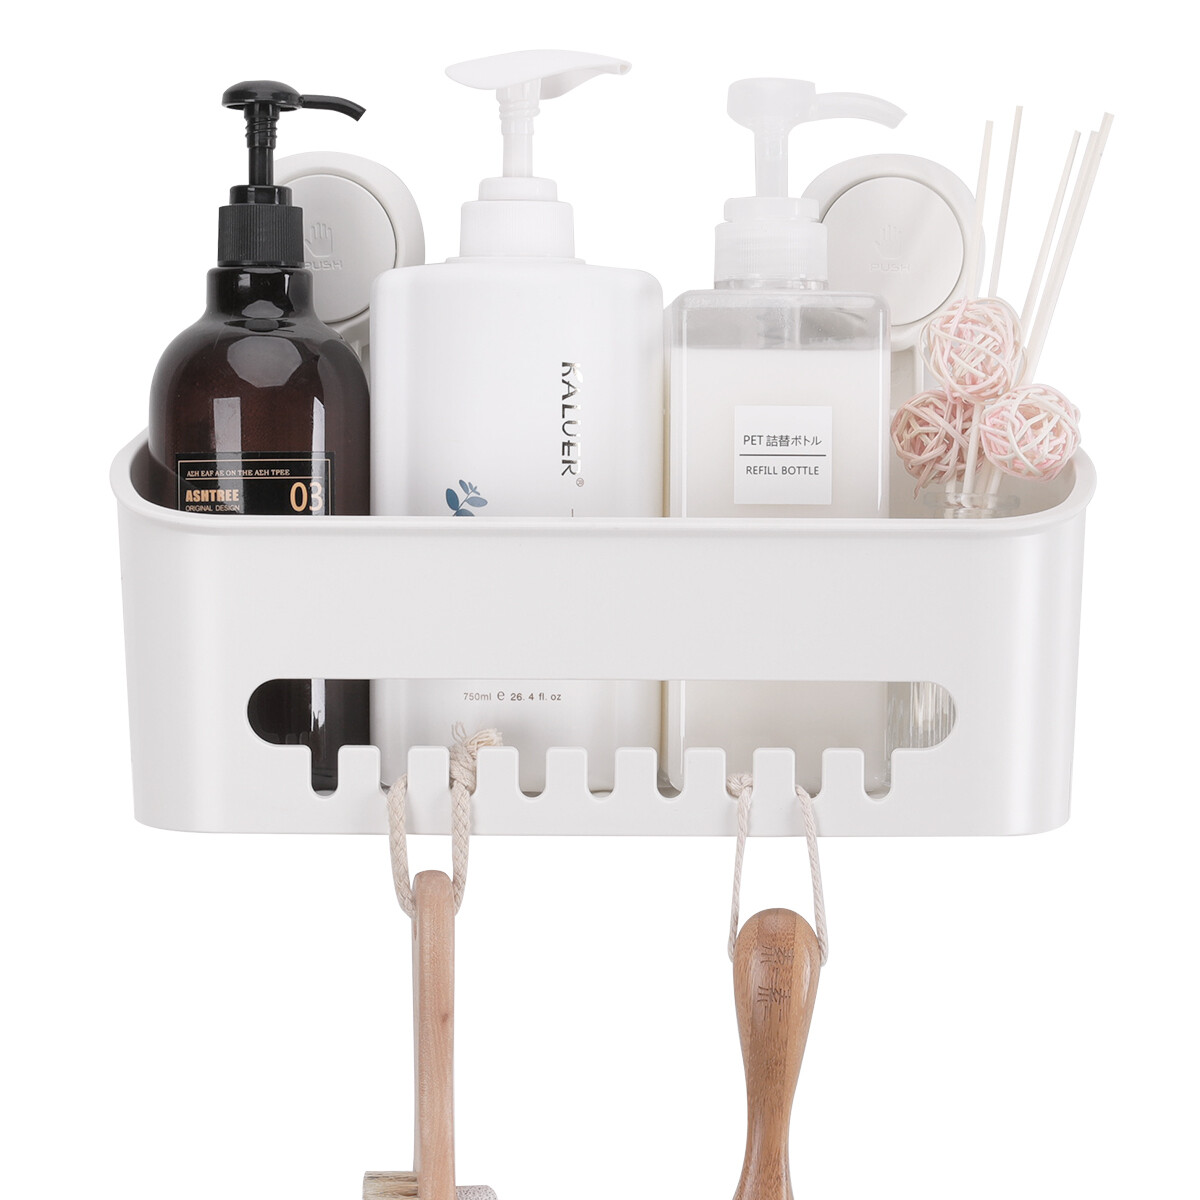 MYKE Suction Cup Shower Caddy